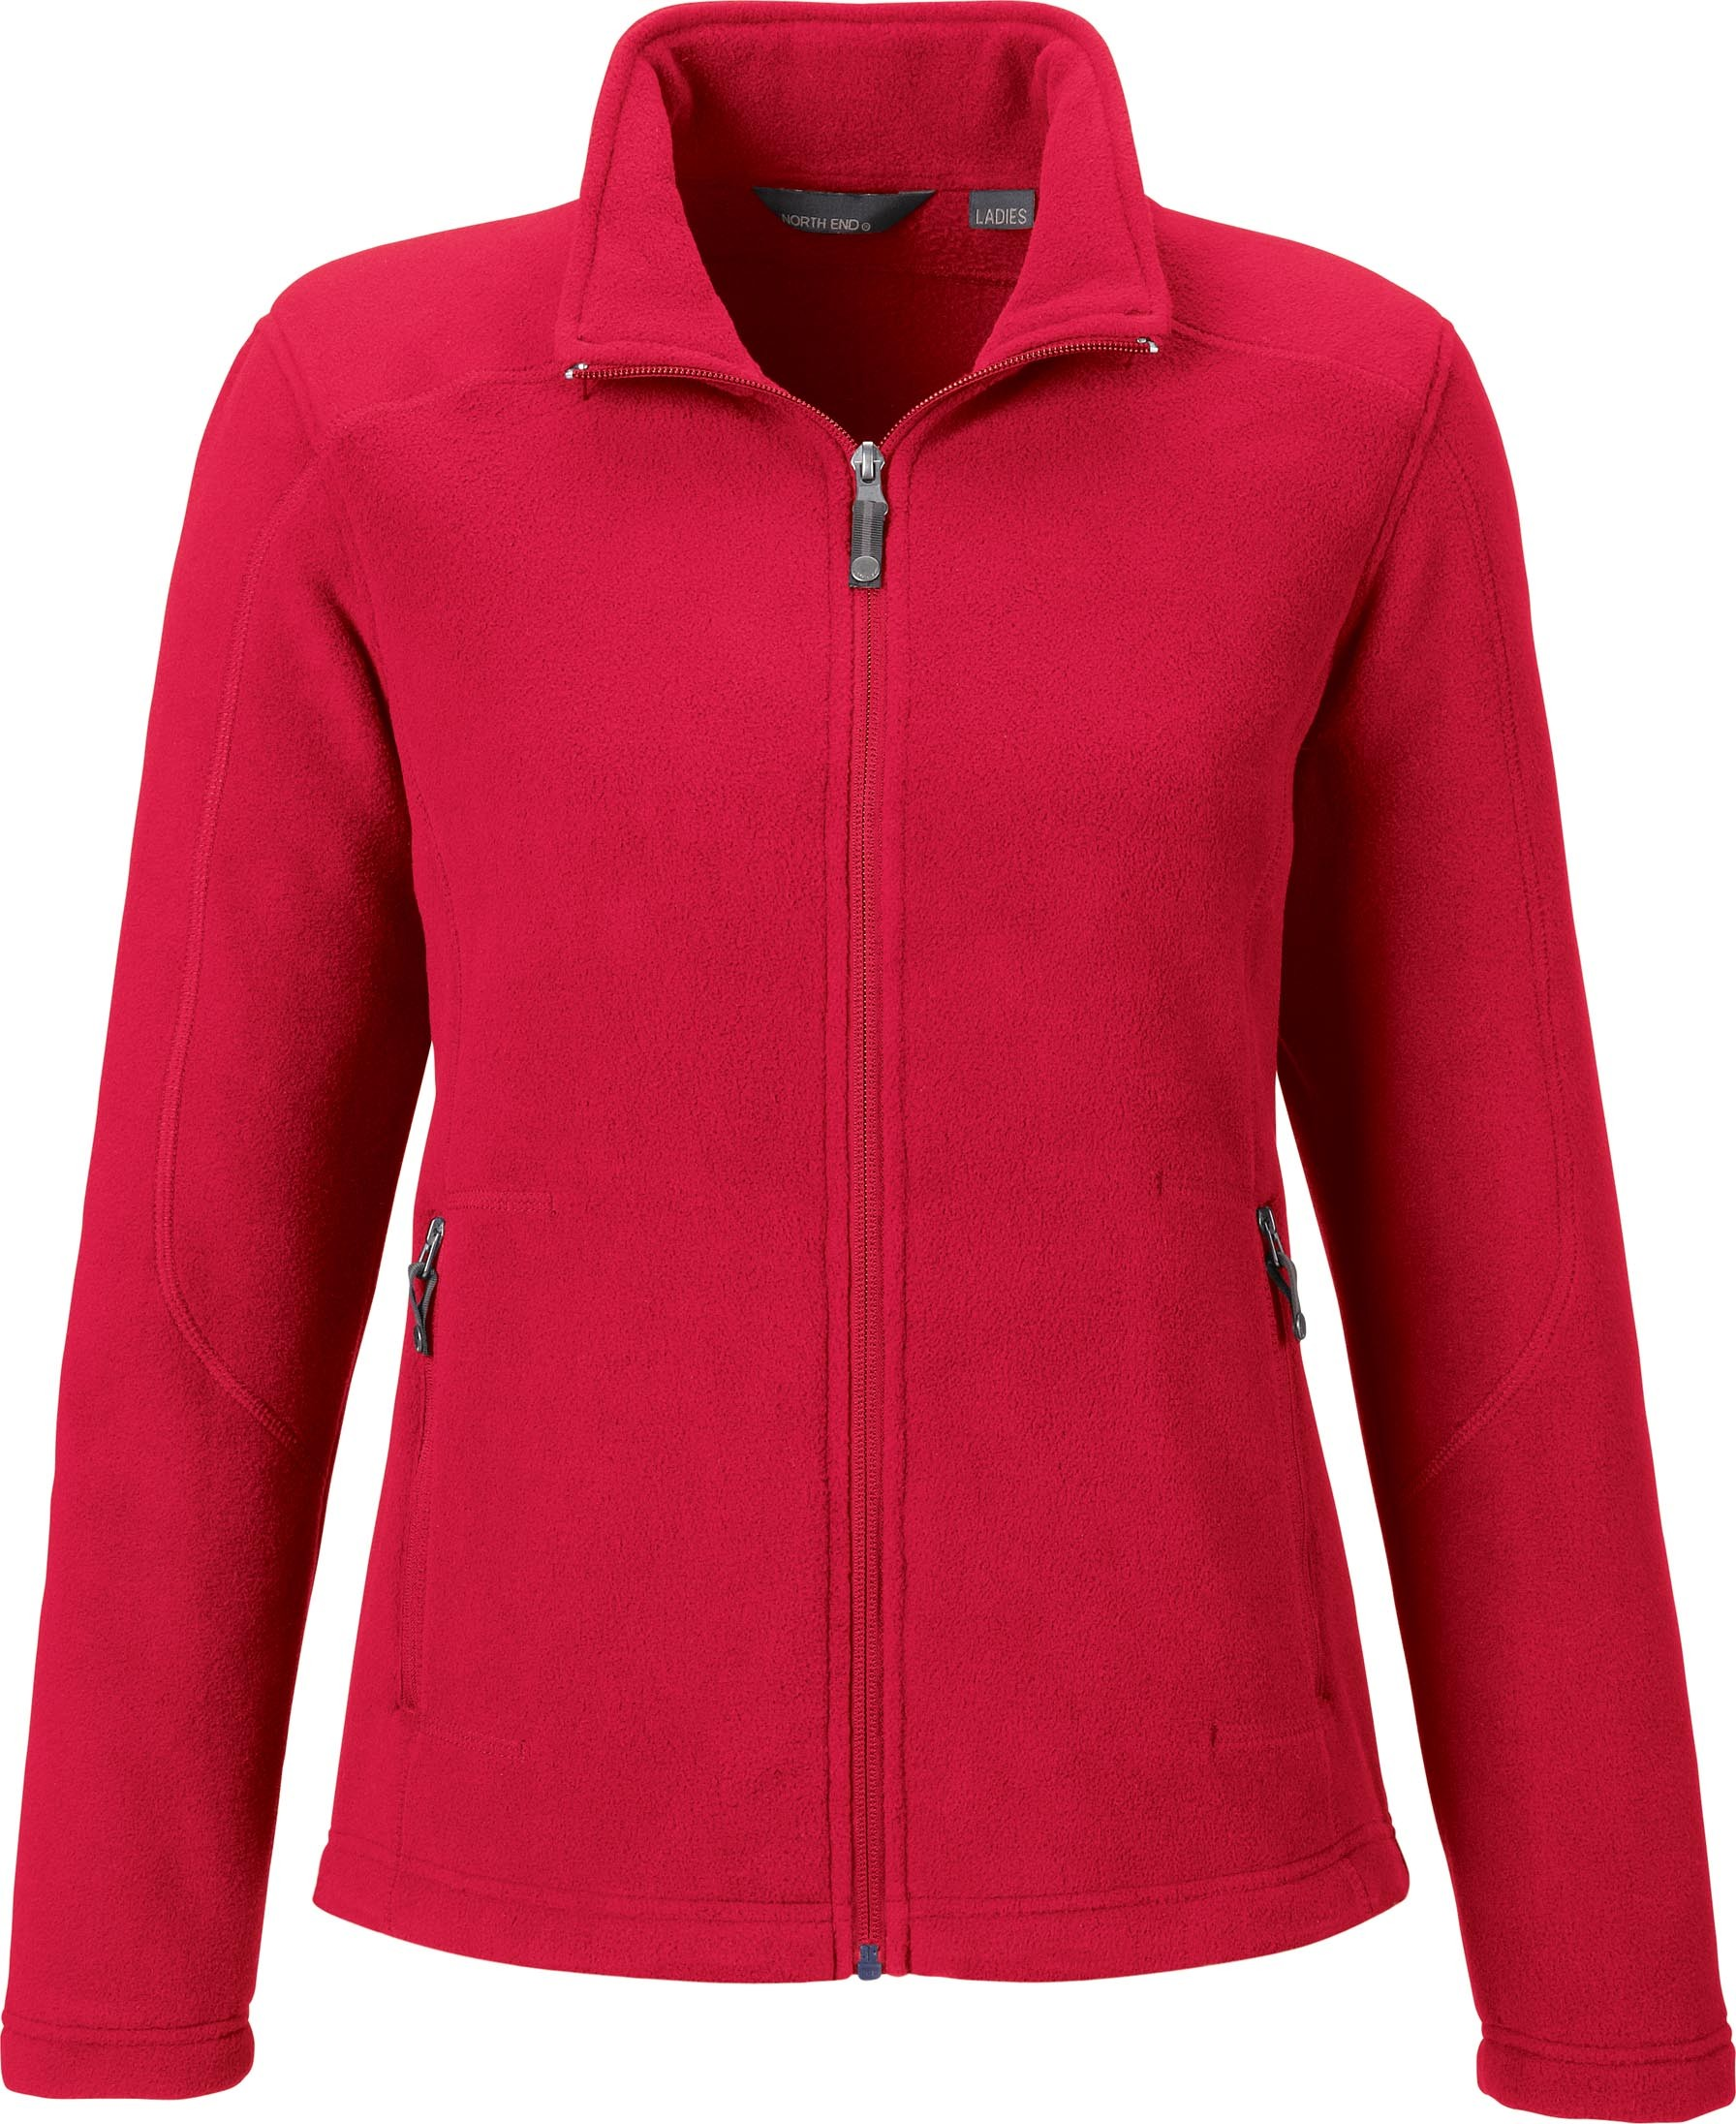 Ash City Poly Fleece 78172 - Voyage Ladies' Fleece Jacket $29.11 ...